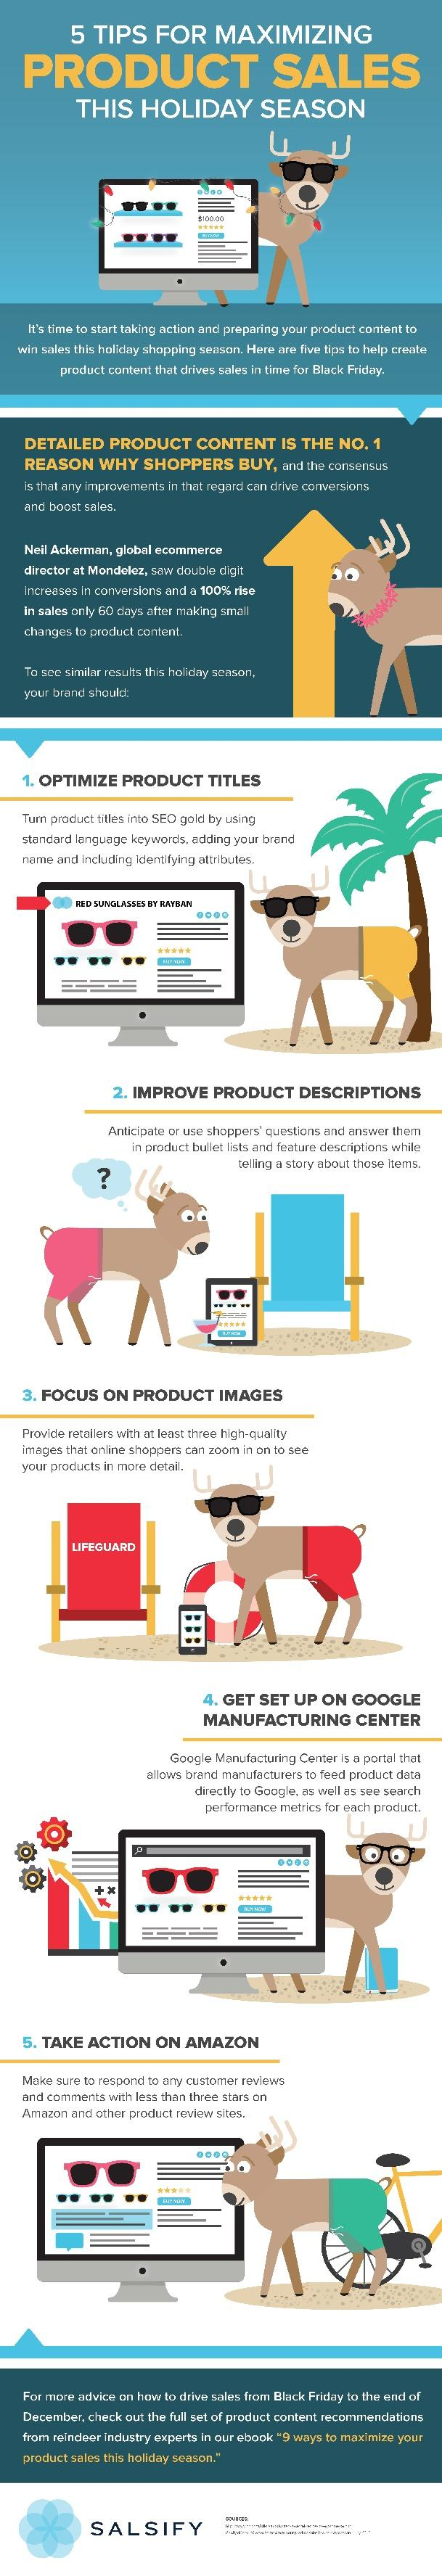 5-tips-for-maximizing-product-sales-this-holiday-season